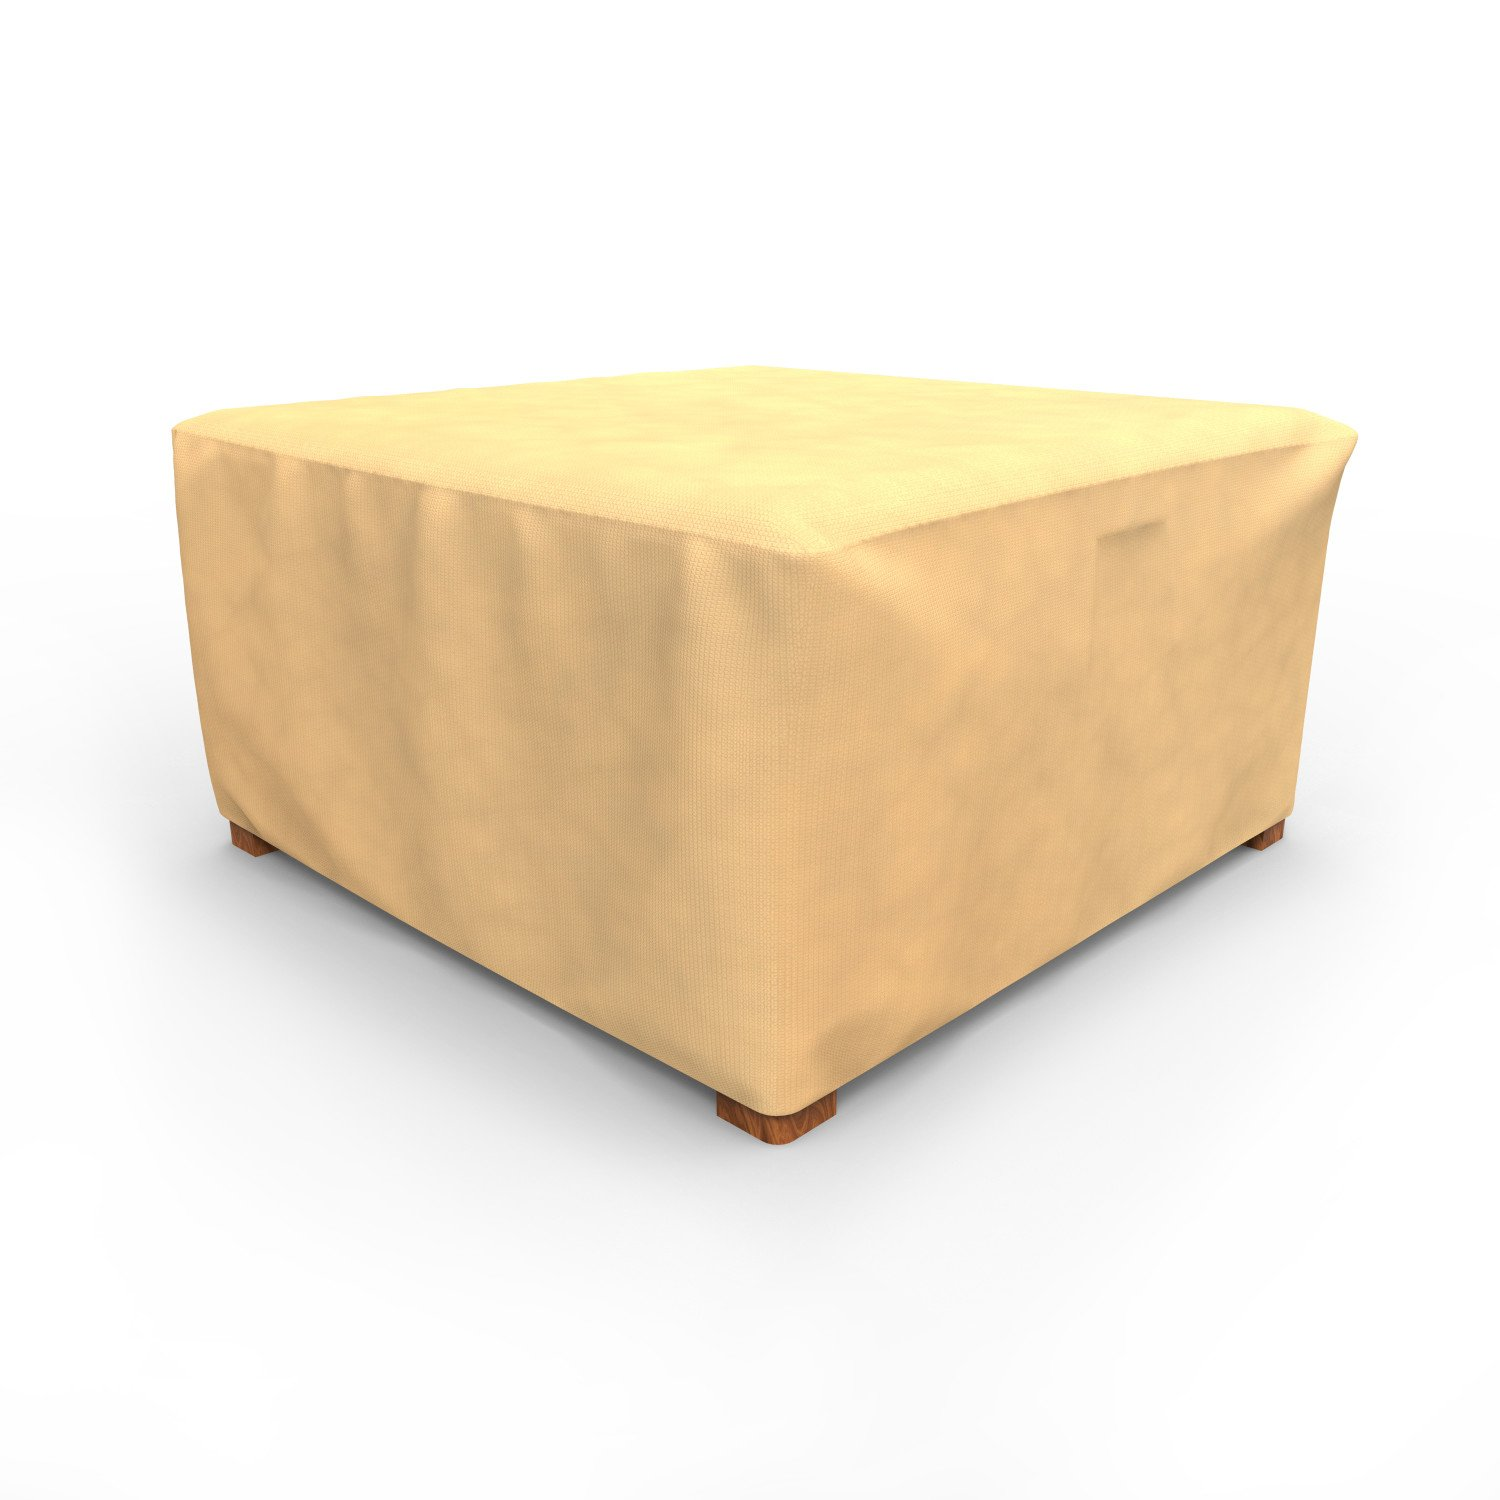 Budge P4A02SF1 All-Seasons Square Patio Table Cover / Ottoman Cover, Extra Large, Tan